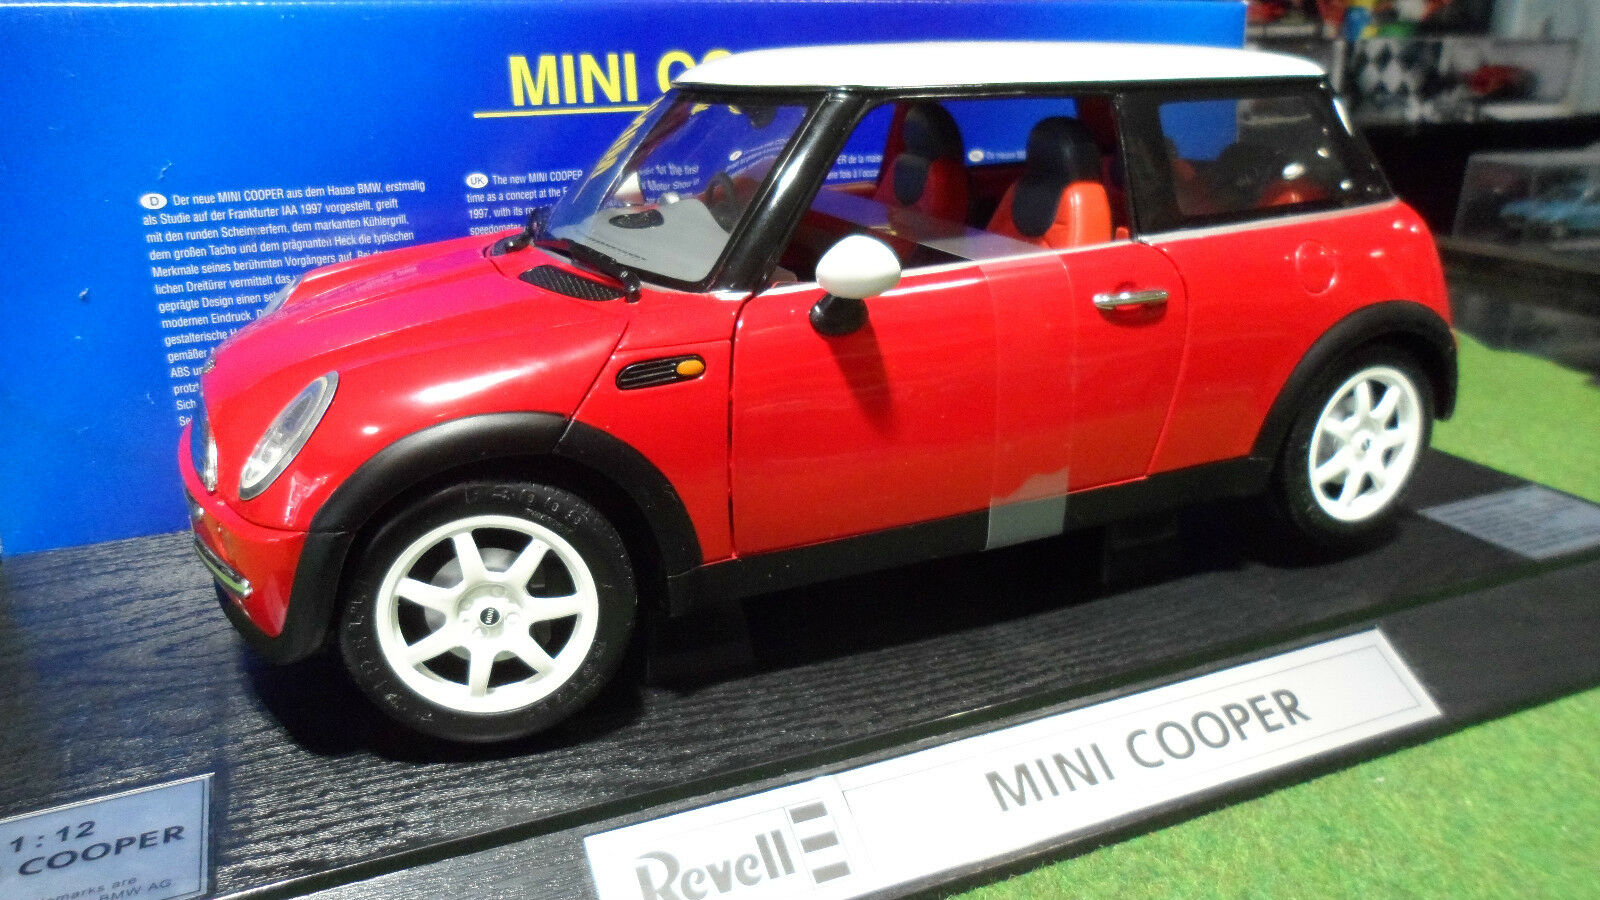 MINI COOPER Rouge Right Hand Driven au 1 12 REVELL 08453 voiture miniature